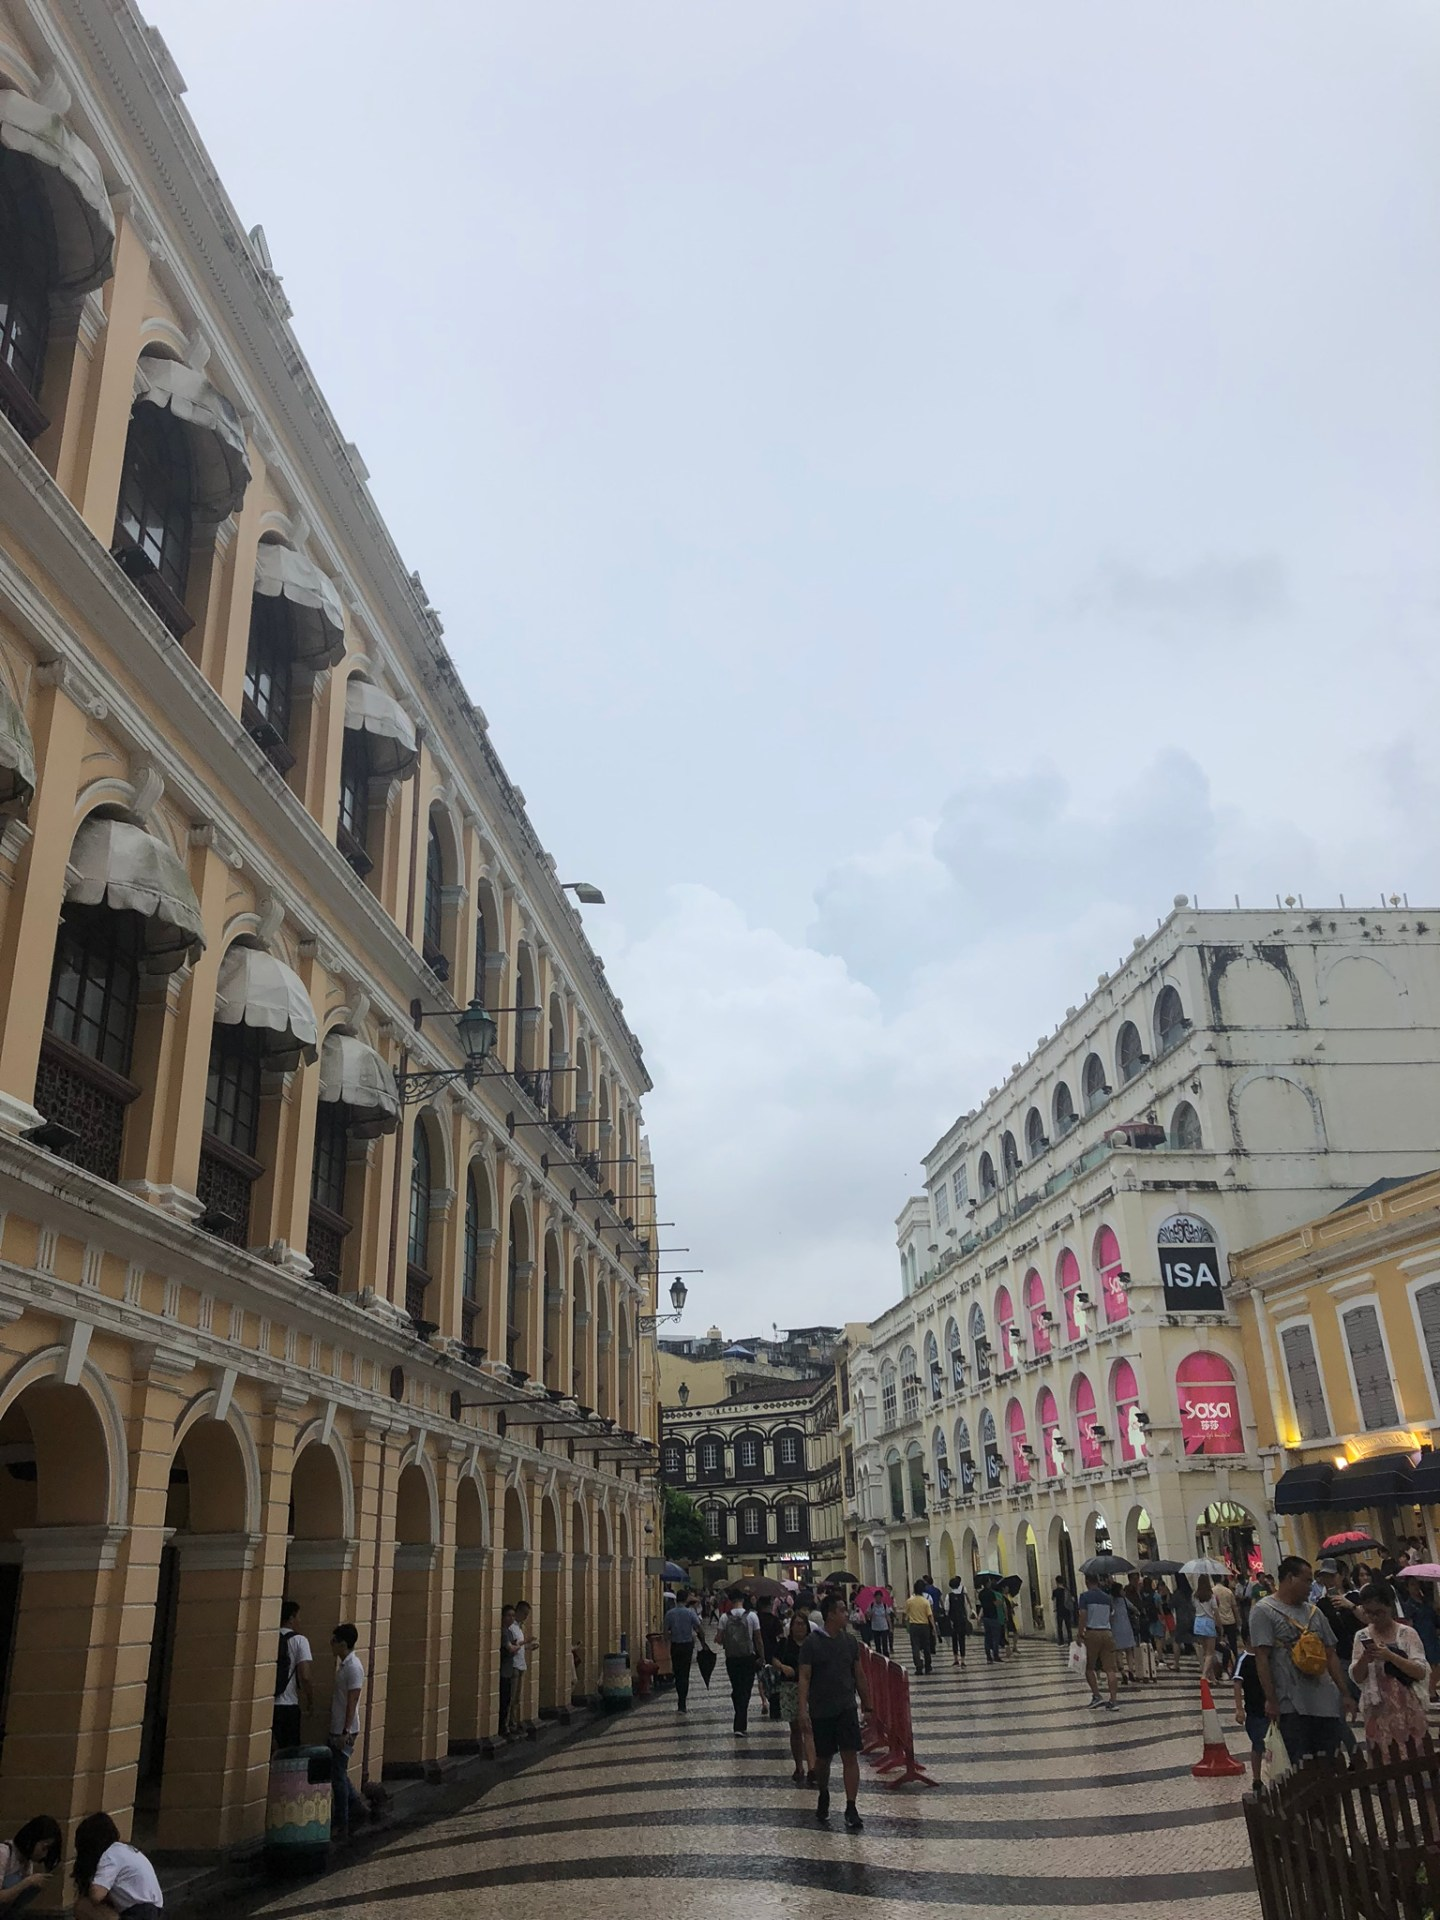 Senado Square, Macau, China